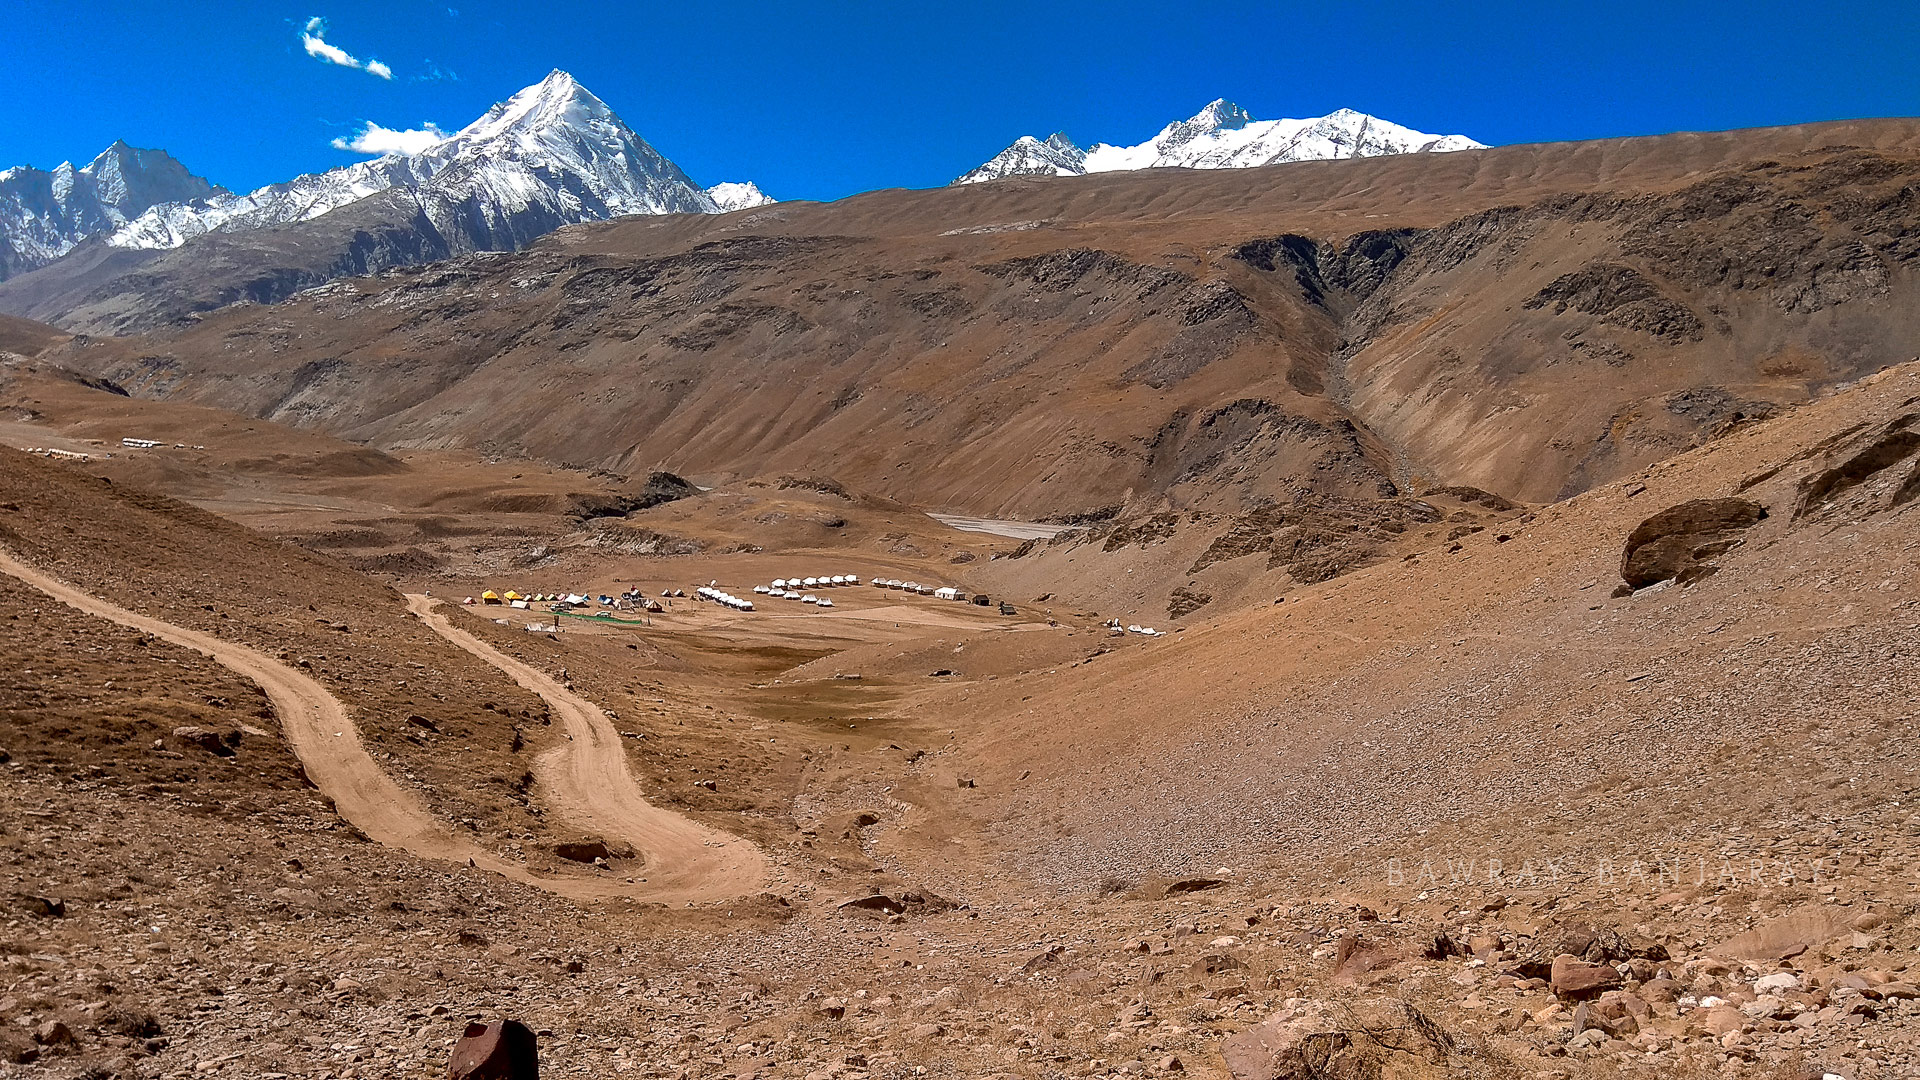 Road to CHandra Taal from the camp site